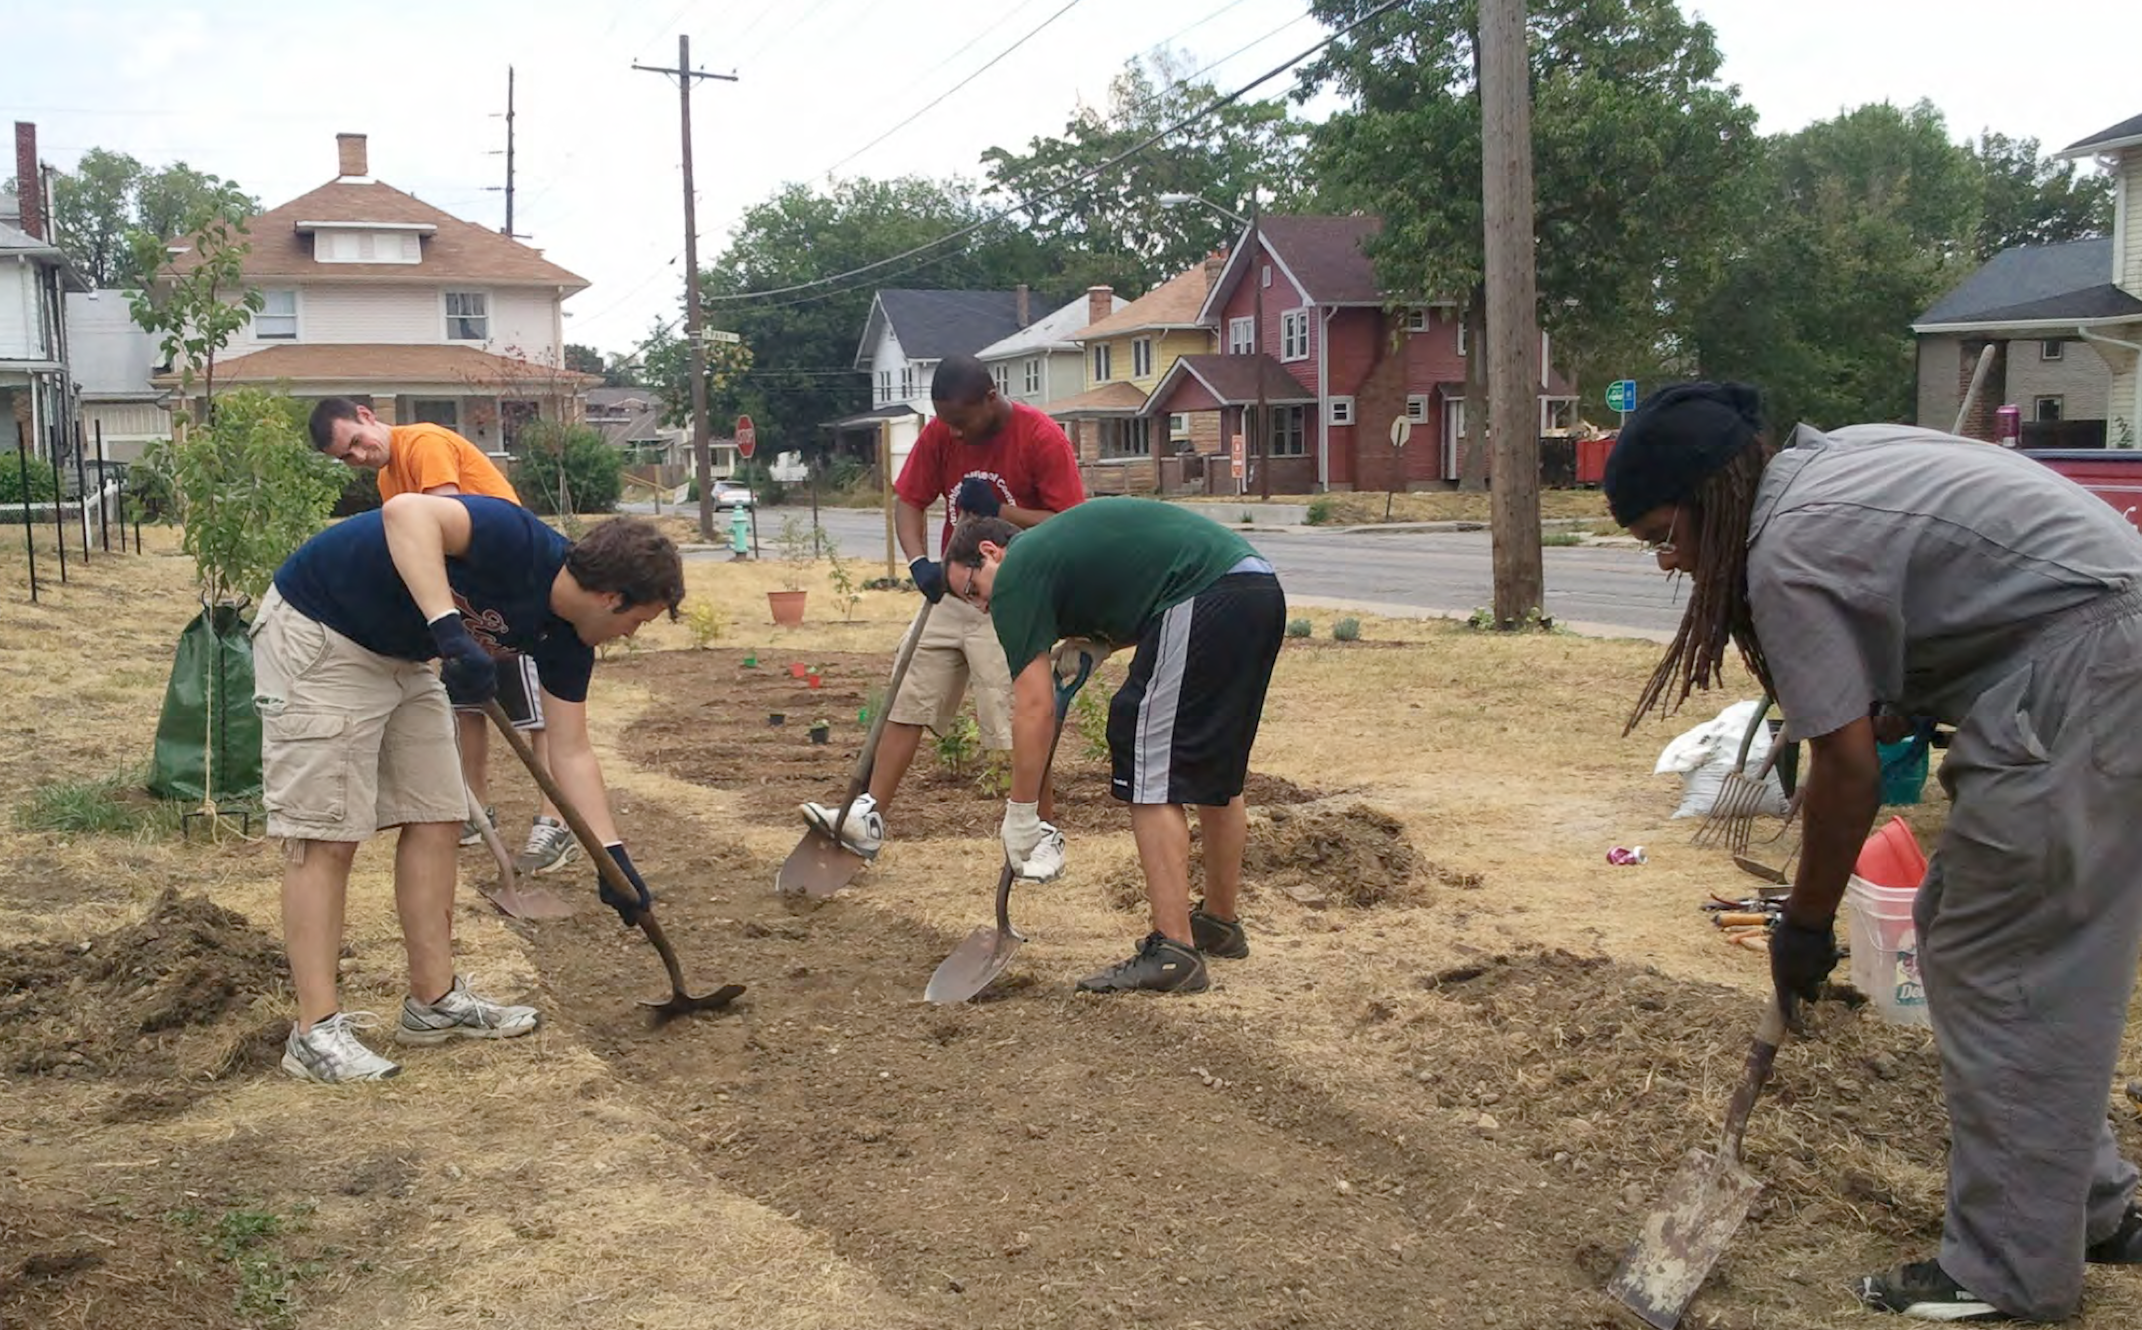 How to turn a vacant lot into a community garden: A primer | ioby